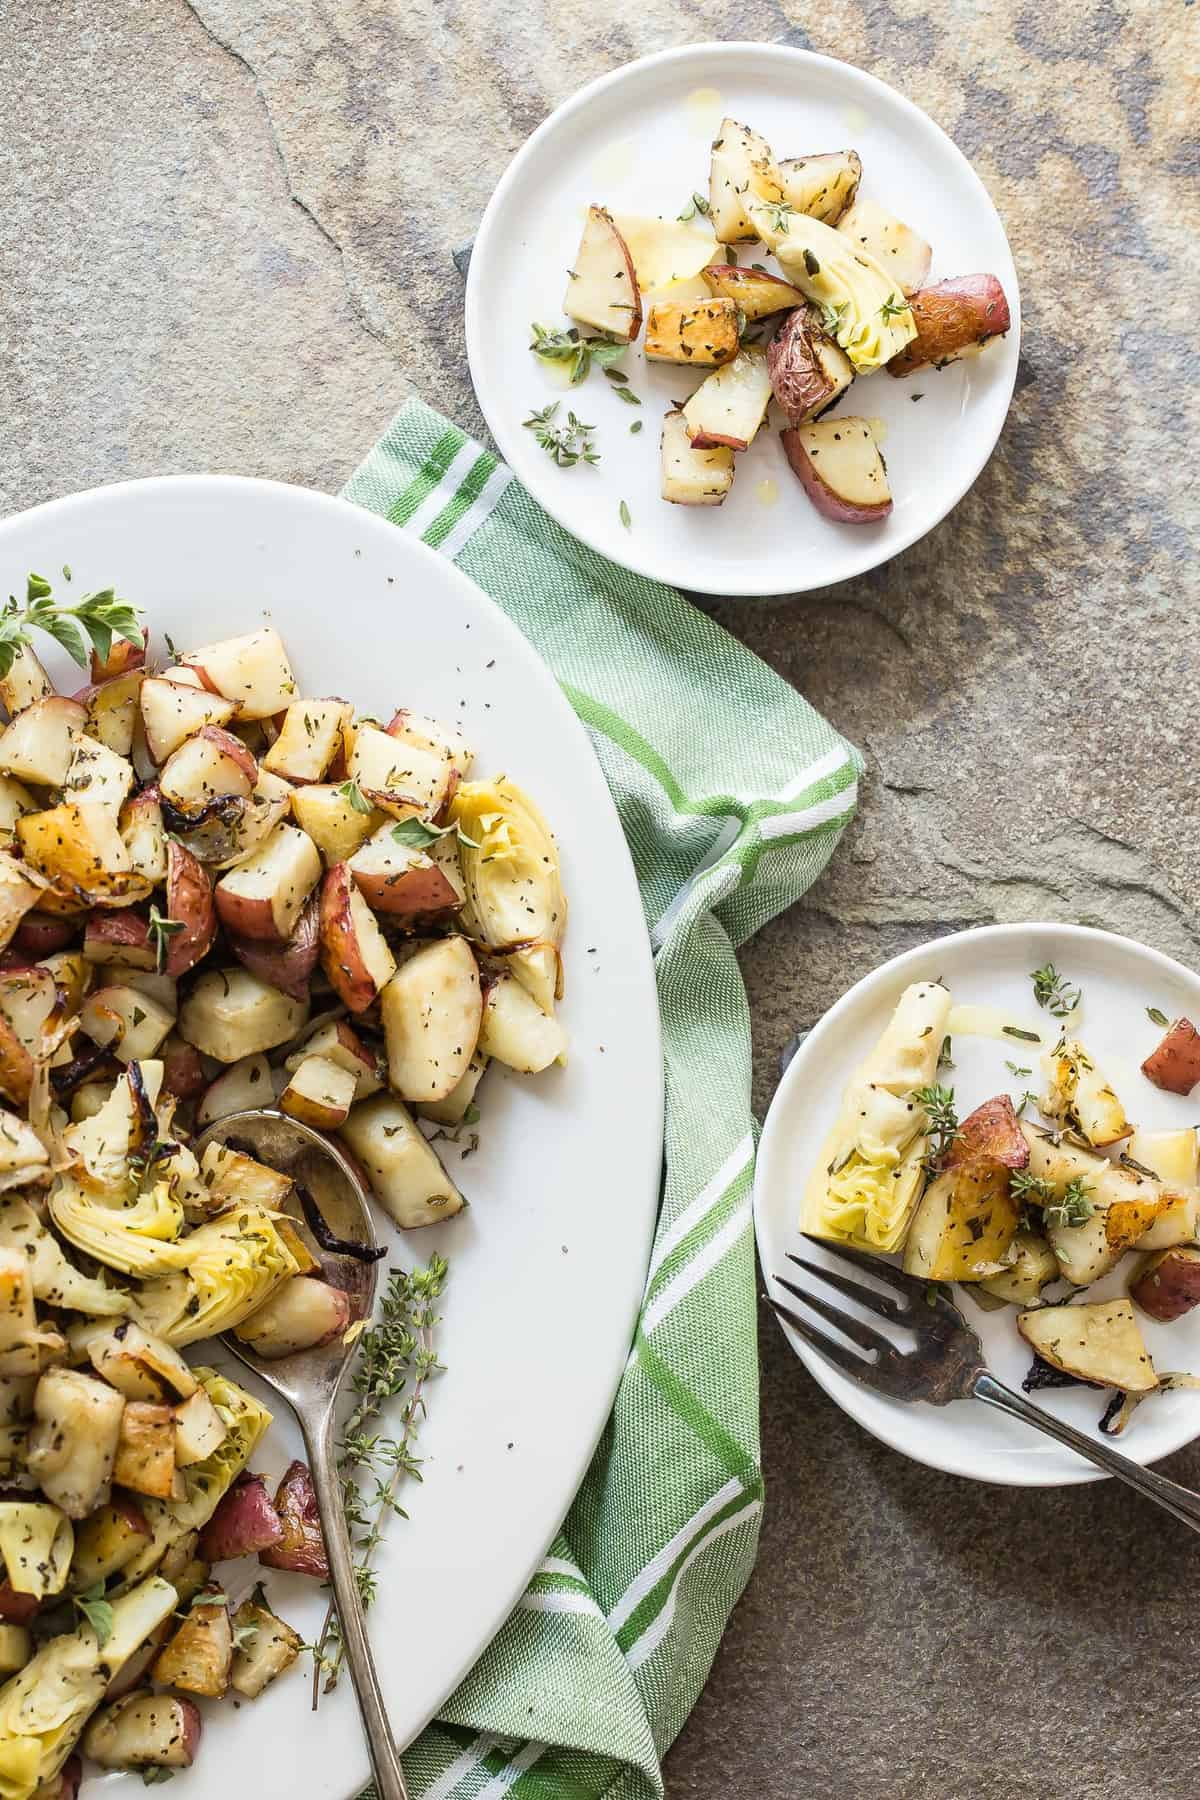 Roasted Red Potatoes with fresh rosemary, thyme and oregano and tossed in olive oil. The final piece of this side dish extravaganza is to add artichoke quarters!